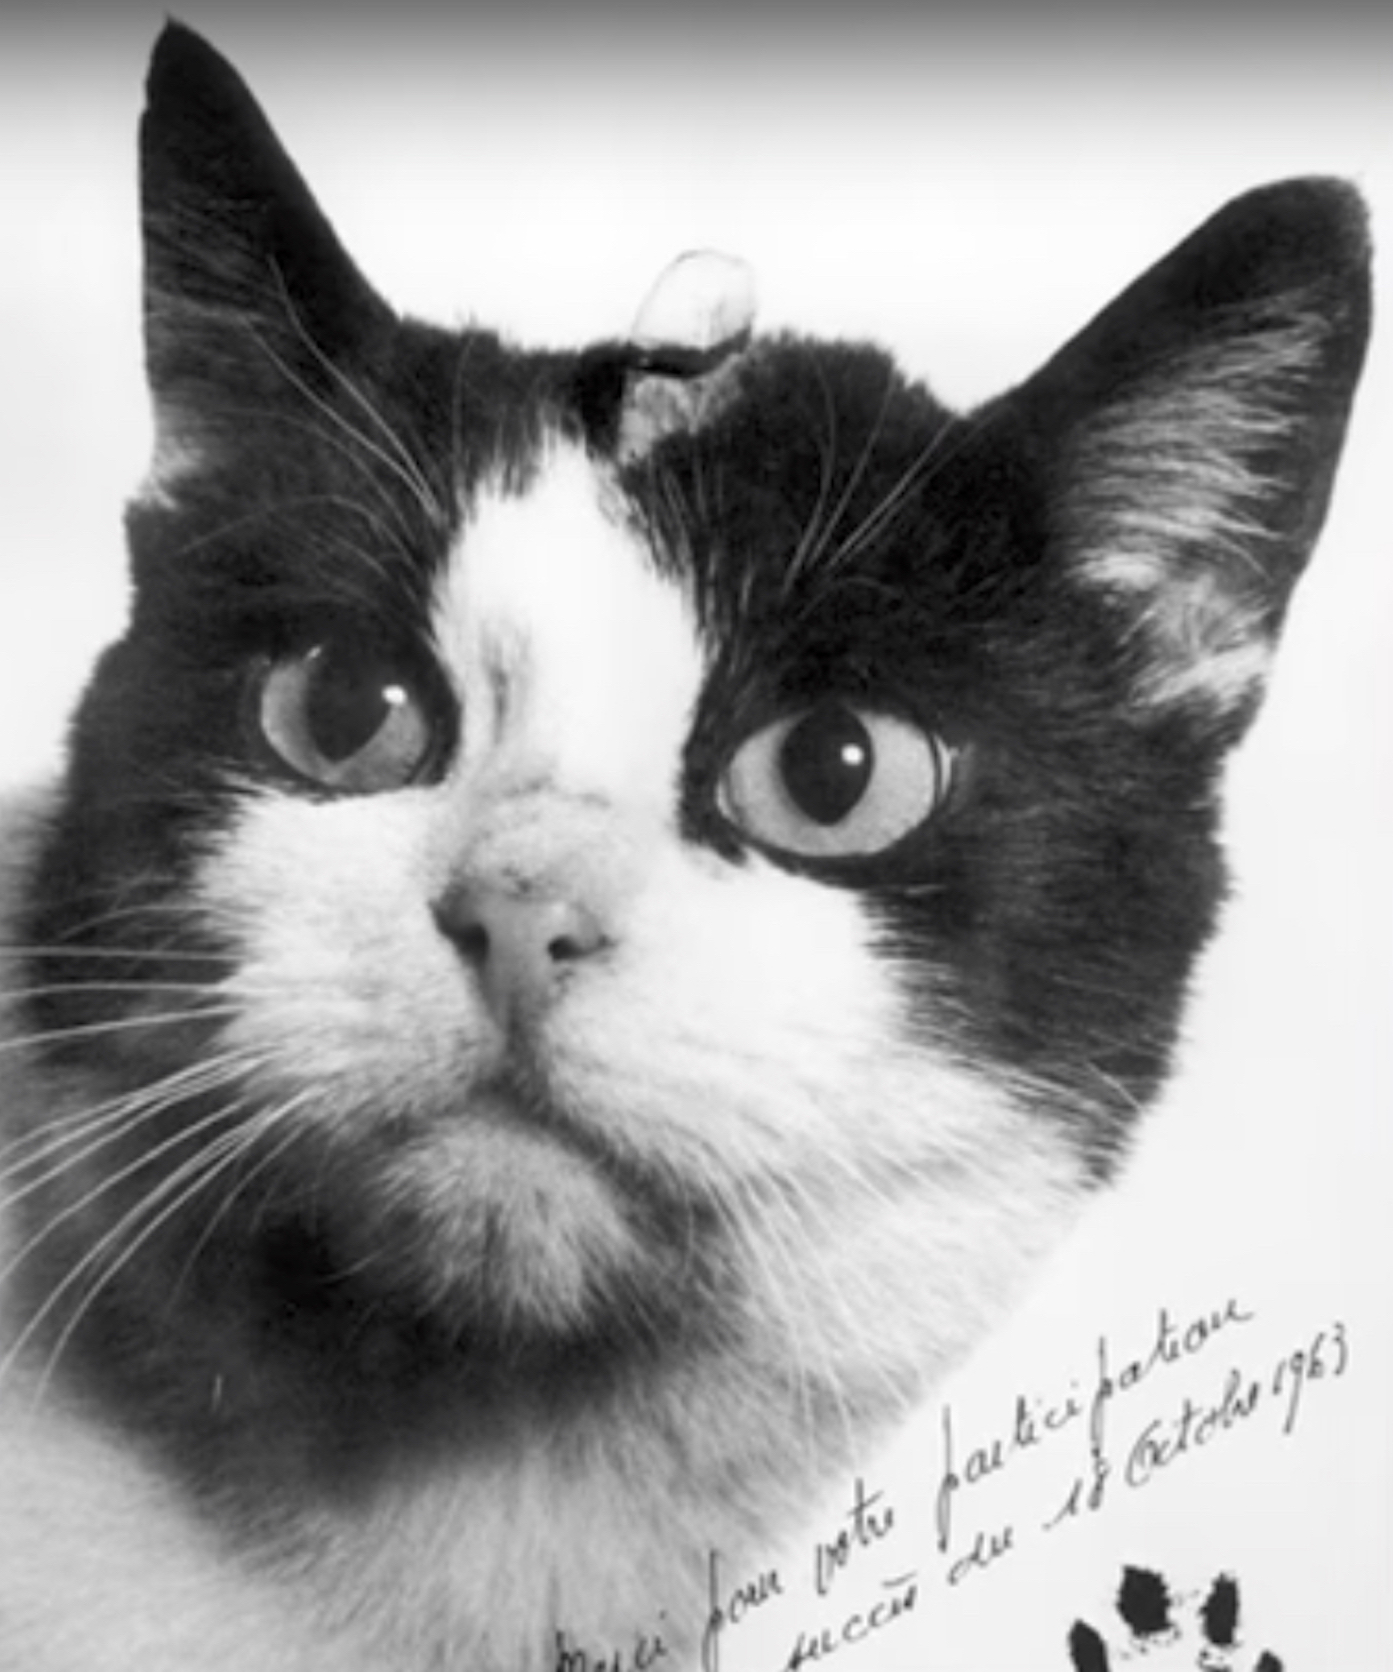 Animal Cat Video Porn people want to erect a statue honoring the forgotten first